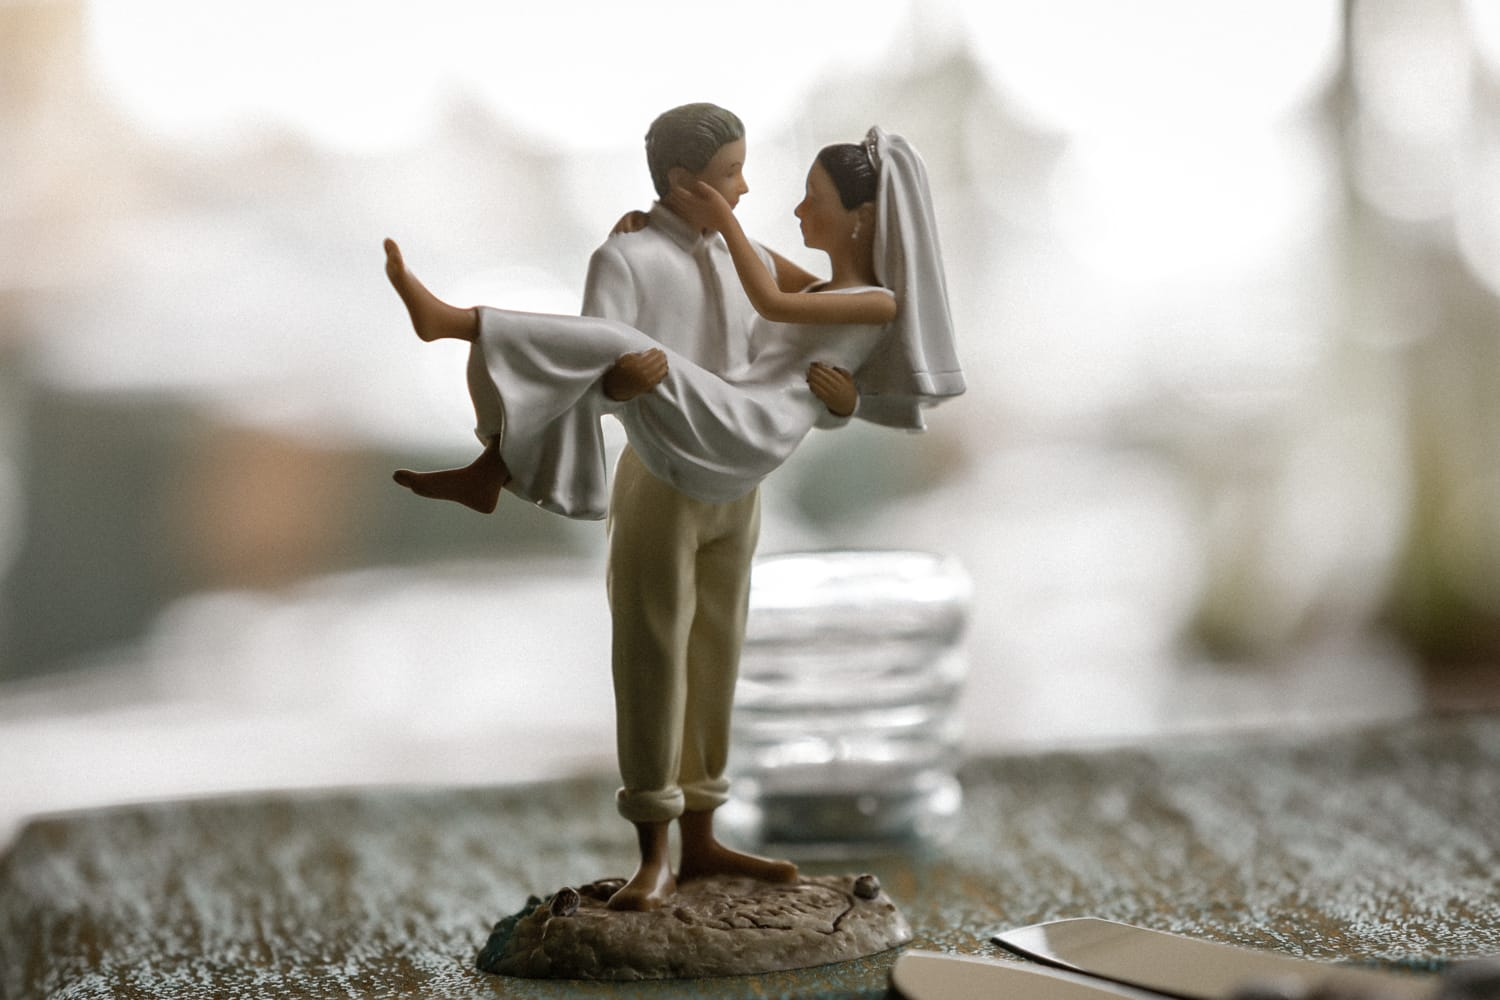 Wedding day decoration of figuring of groom carrying bride.